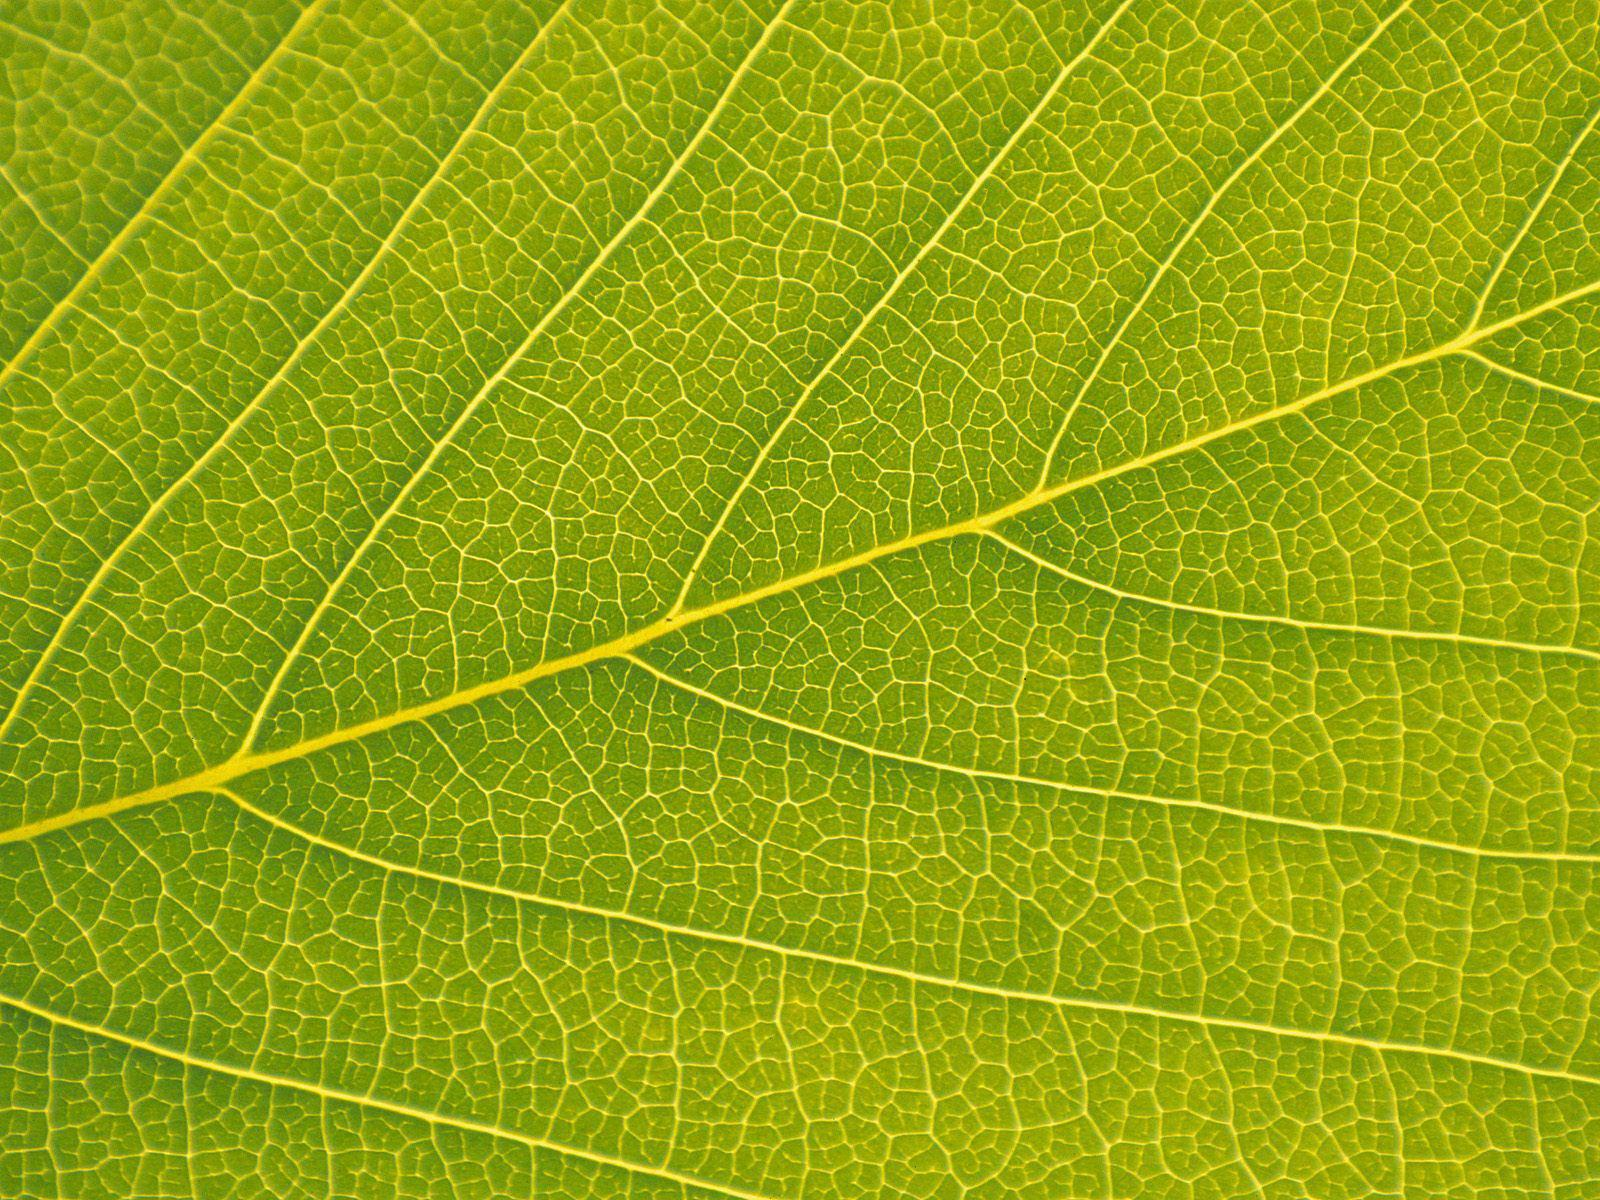 Veins of a leaf macro veins detailed leaves